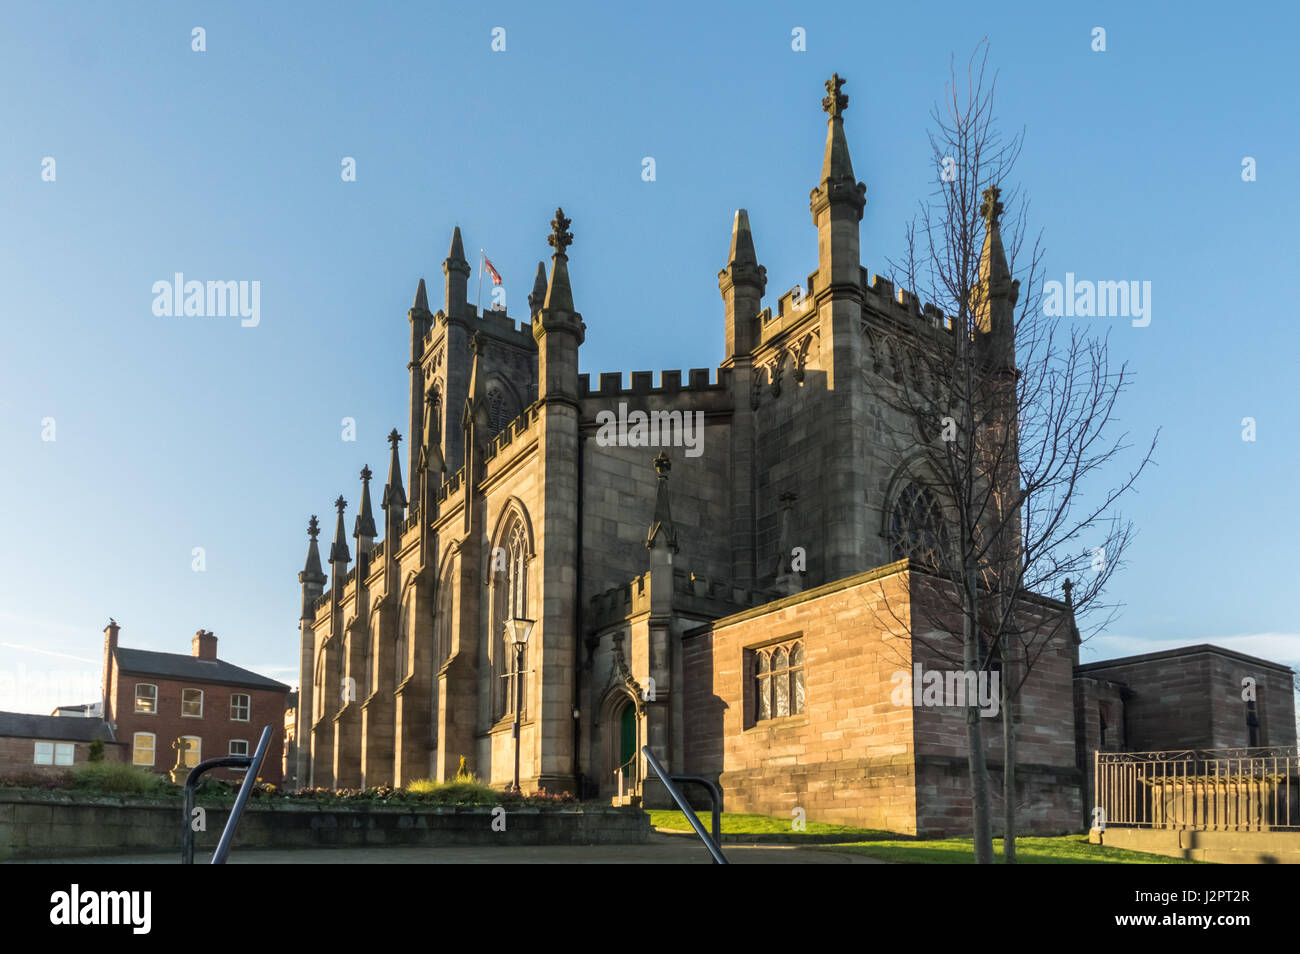 St Mary's parish church Oldham on a sunny afternoon, looking north - Stock Image